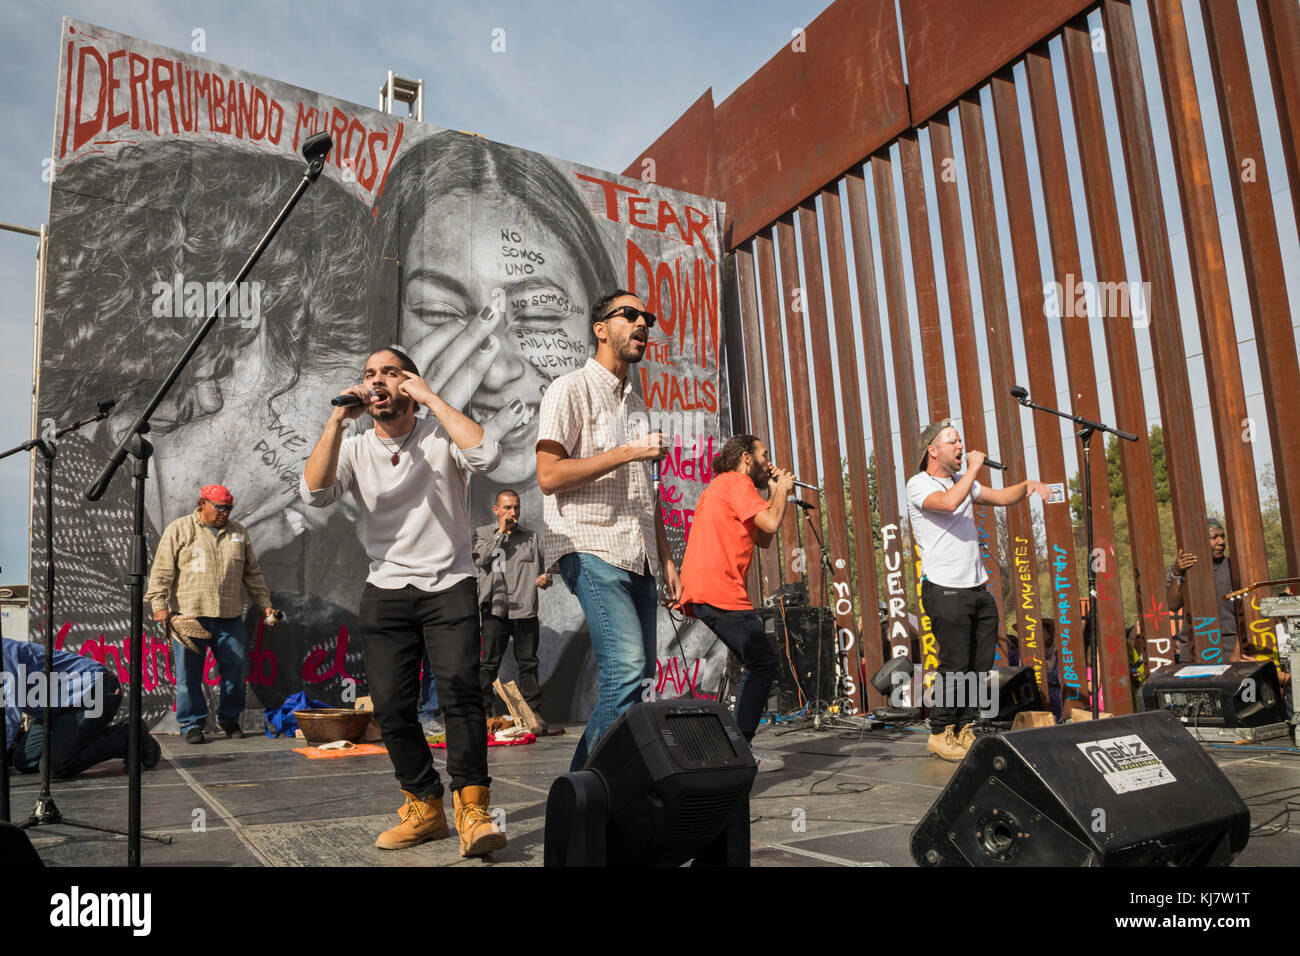 Nogales, Sonora Mexico - The Peace Poets perform during a rally on both sides of the U.S.-Mexico border fence calling - Stock Image